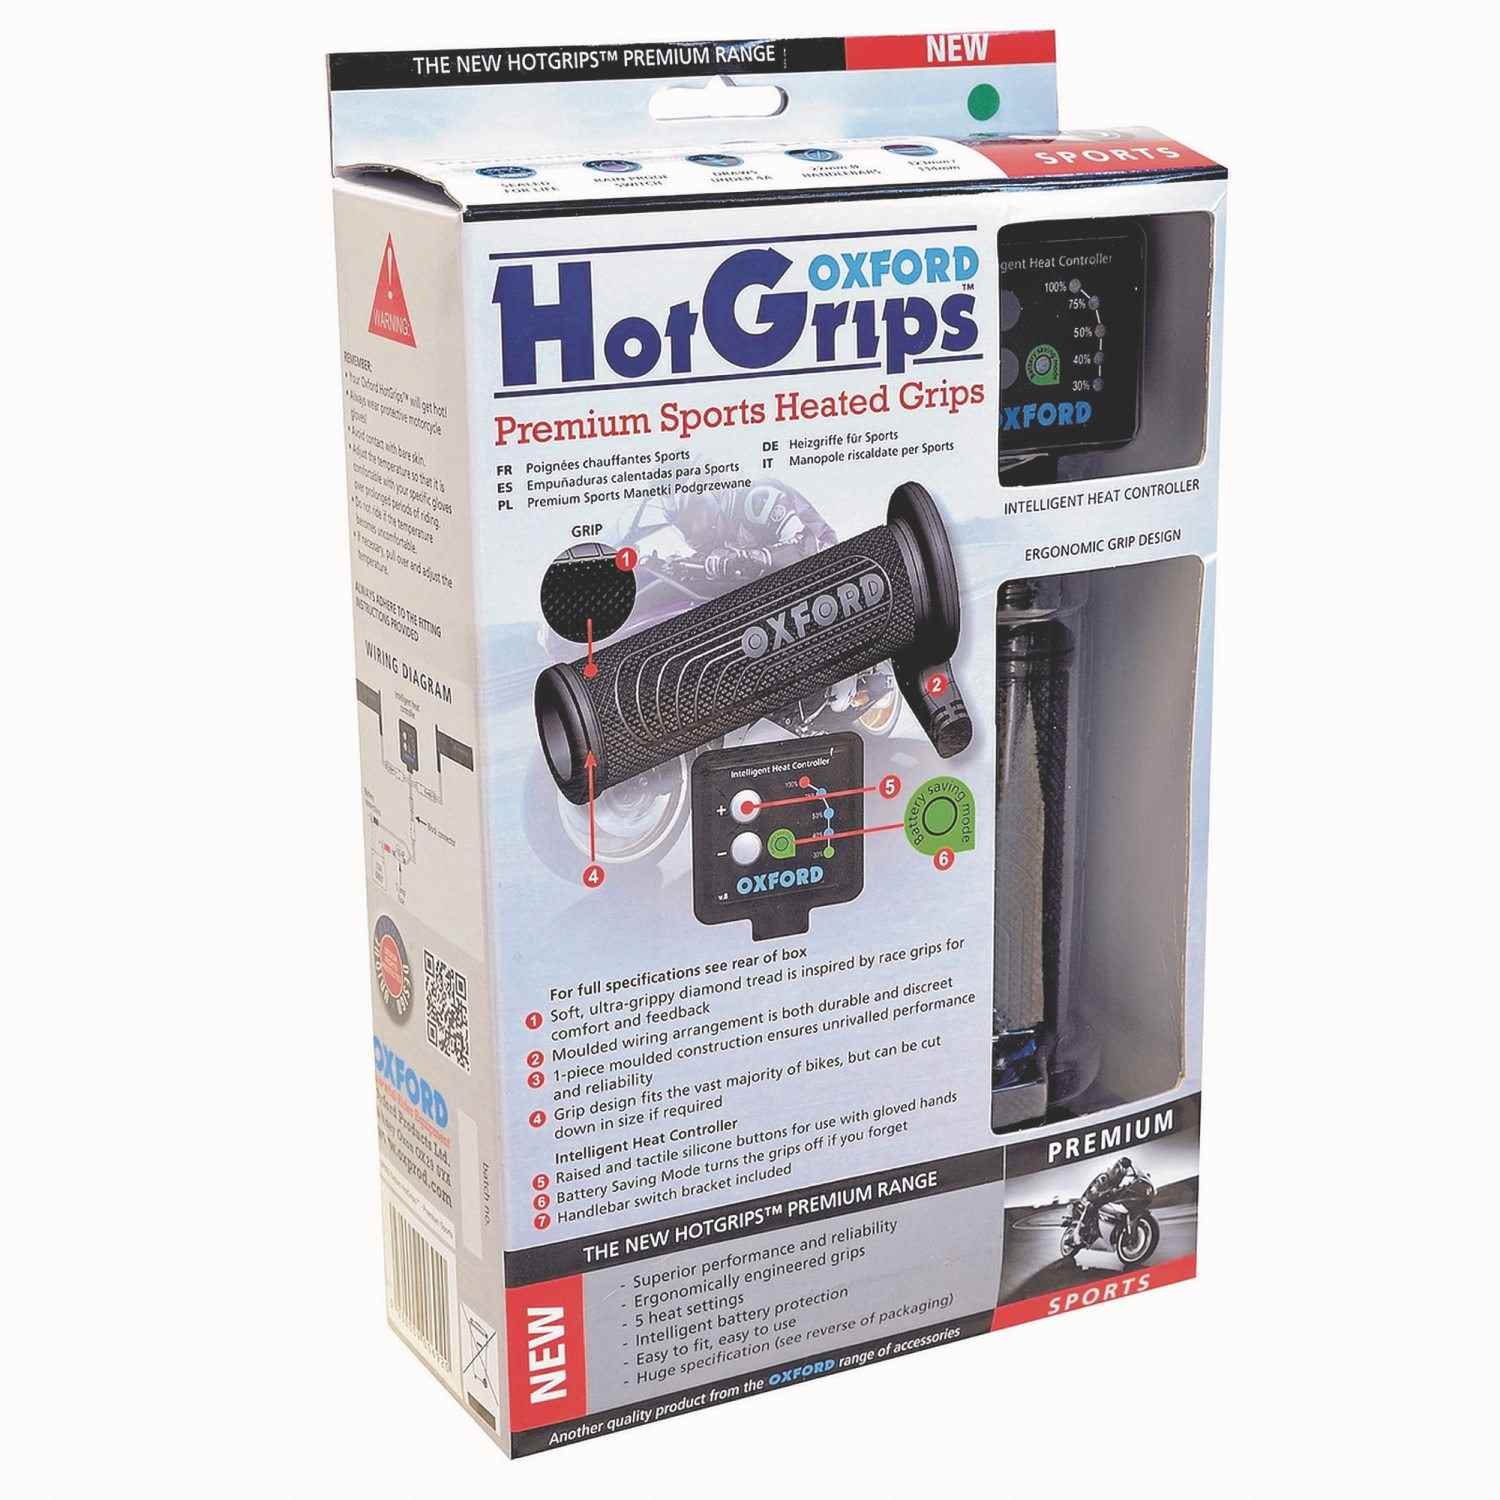 020_T+T_OxProd-Htd-Grips